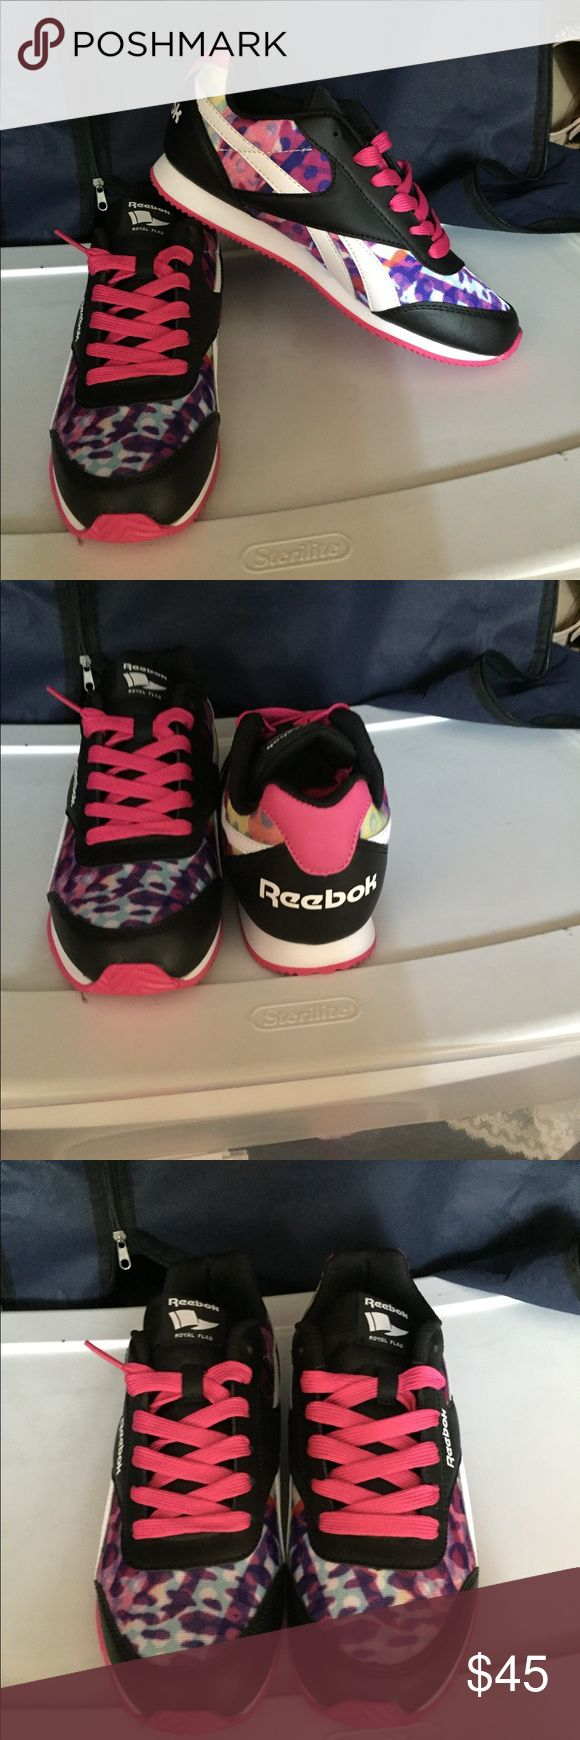 Youth 5.5 Brand new , never worn. Price includes shipping Reebok Shoes Sneakers